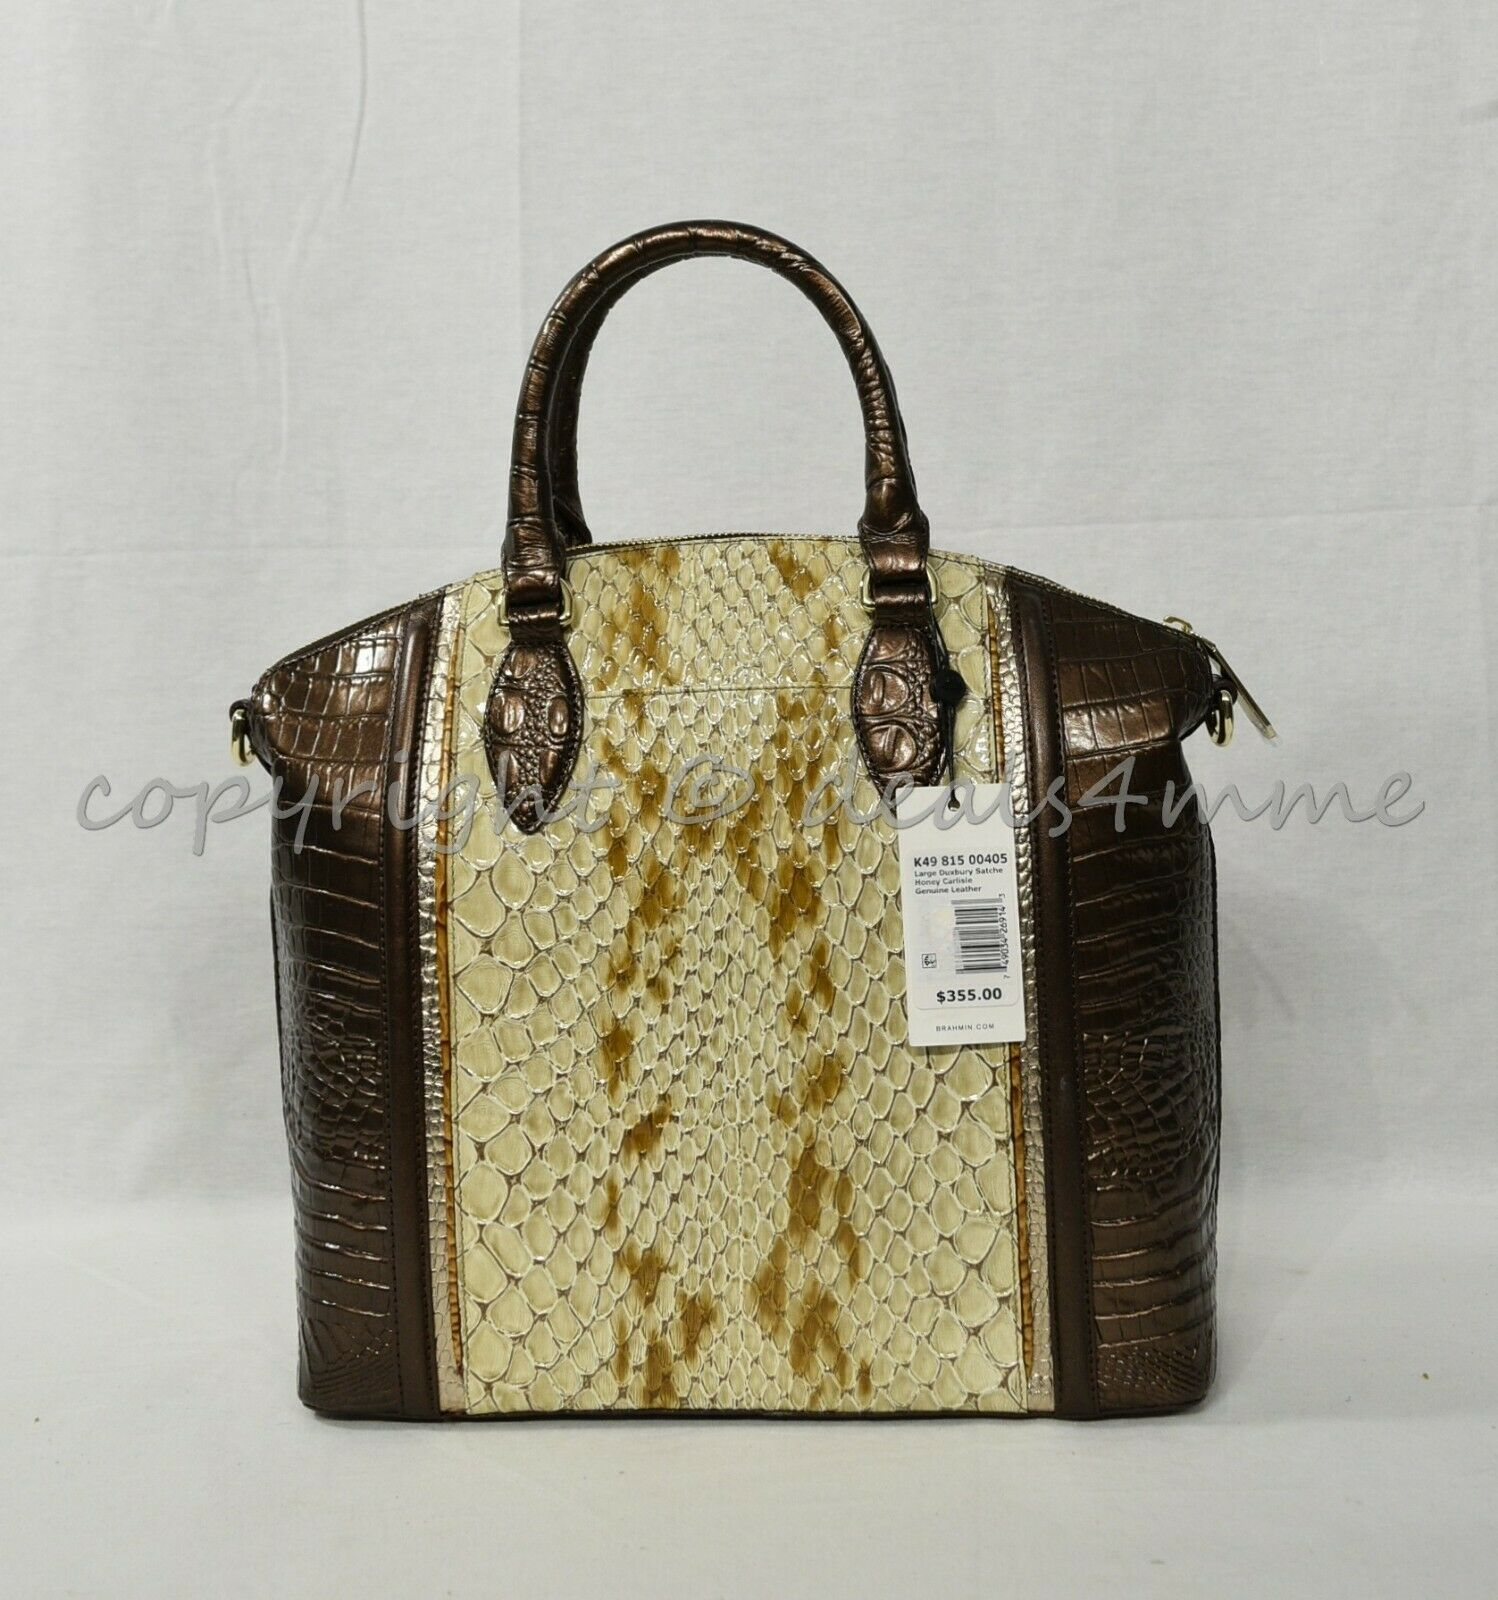 NWT Brahmin Large Duxbury Satchel/Shoulder Bag in Honey Carlisle image 7